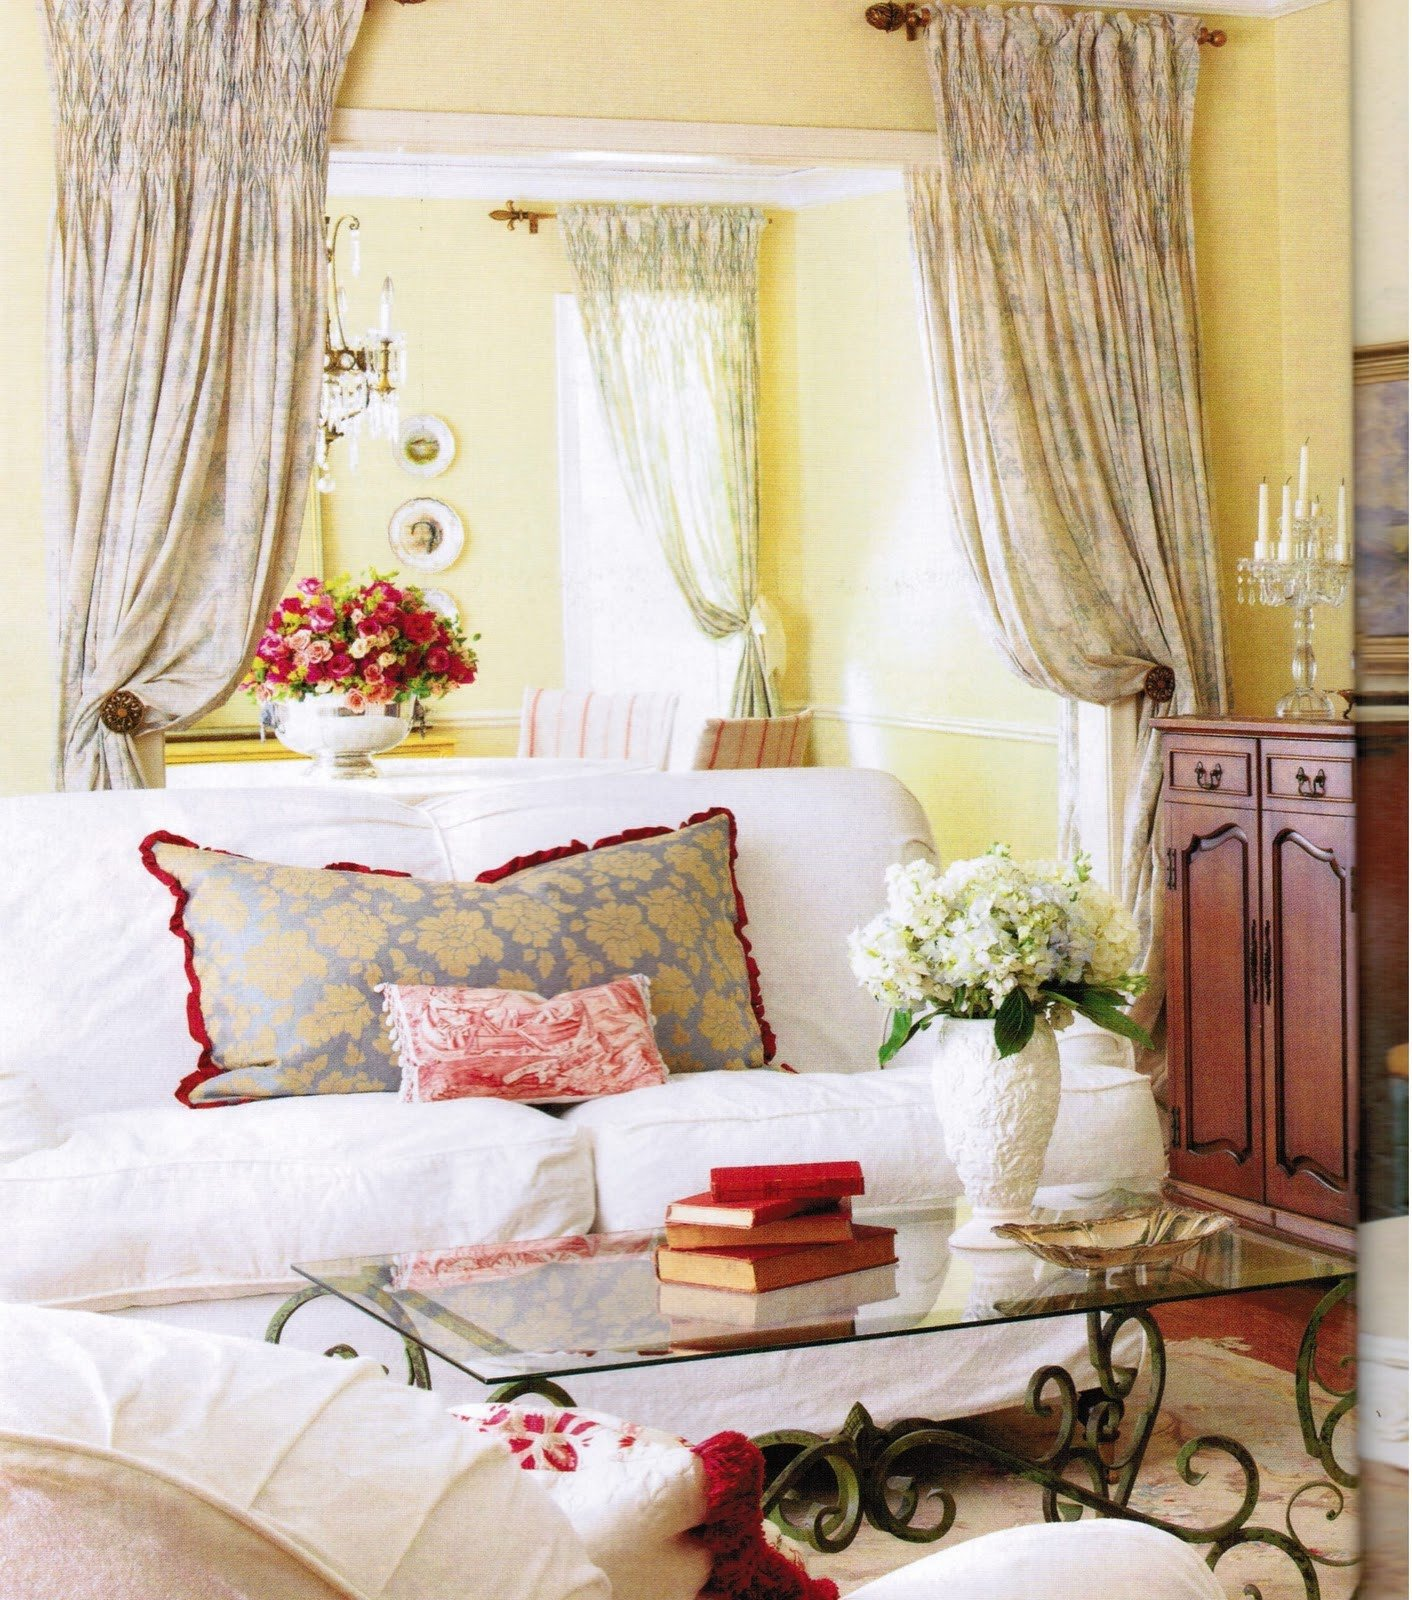 French Country Decor Living Room Maison Decor French Country Enchanting Yellow & White